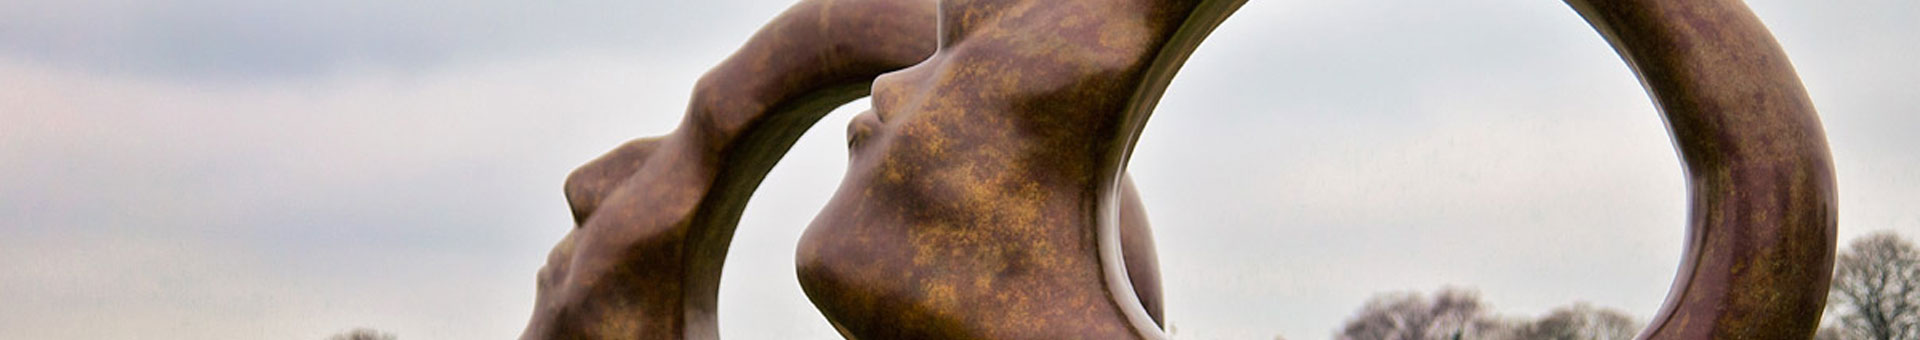 Bespoke bronze statues for sale,custom make abstract statues,bespoke outdoor singly or in groups garden sculptures